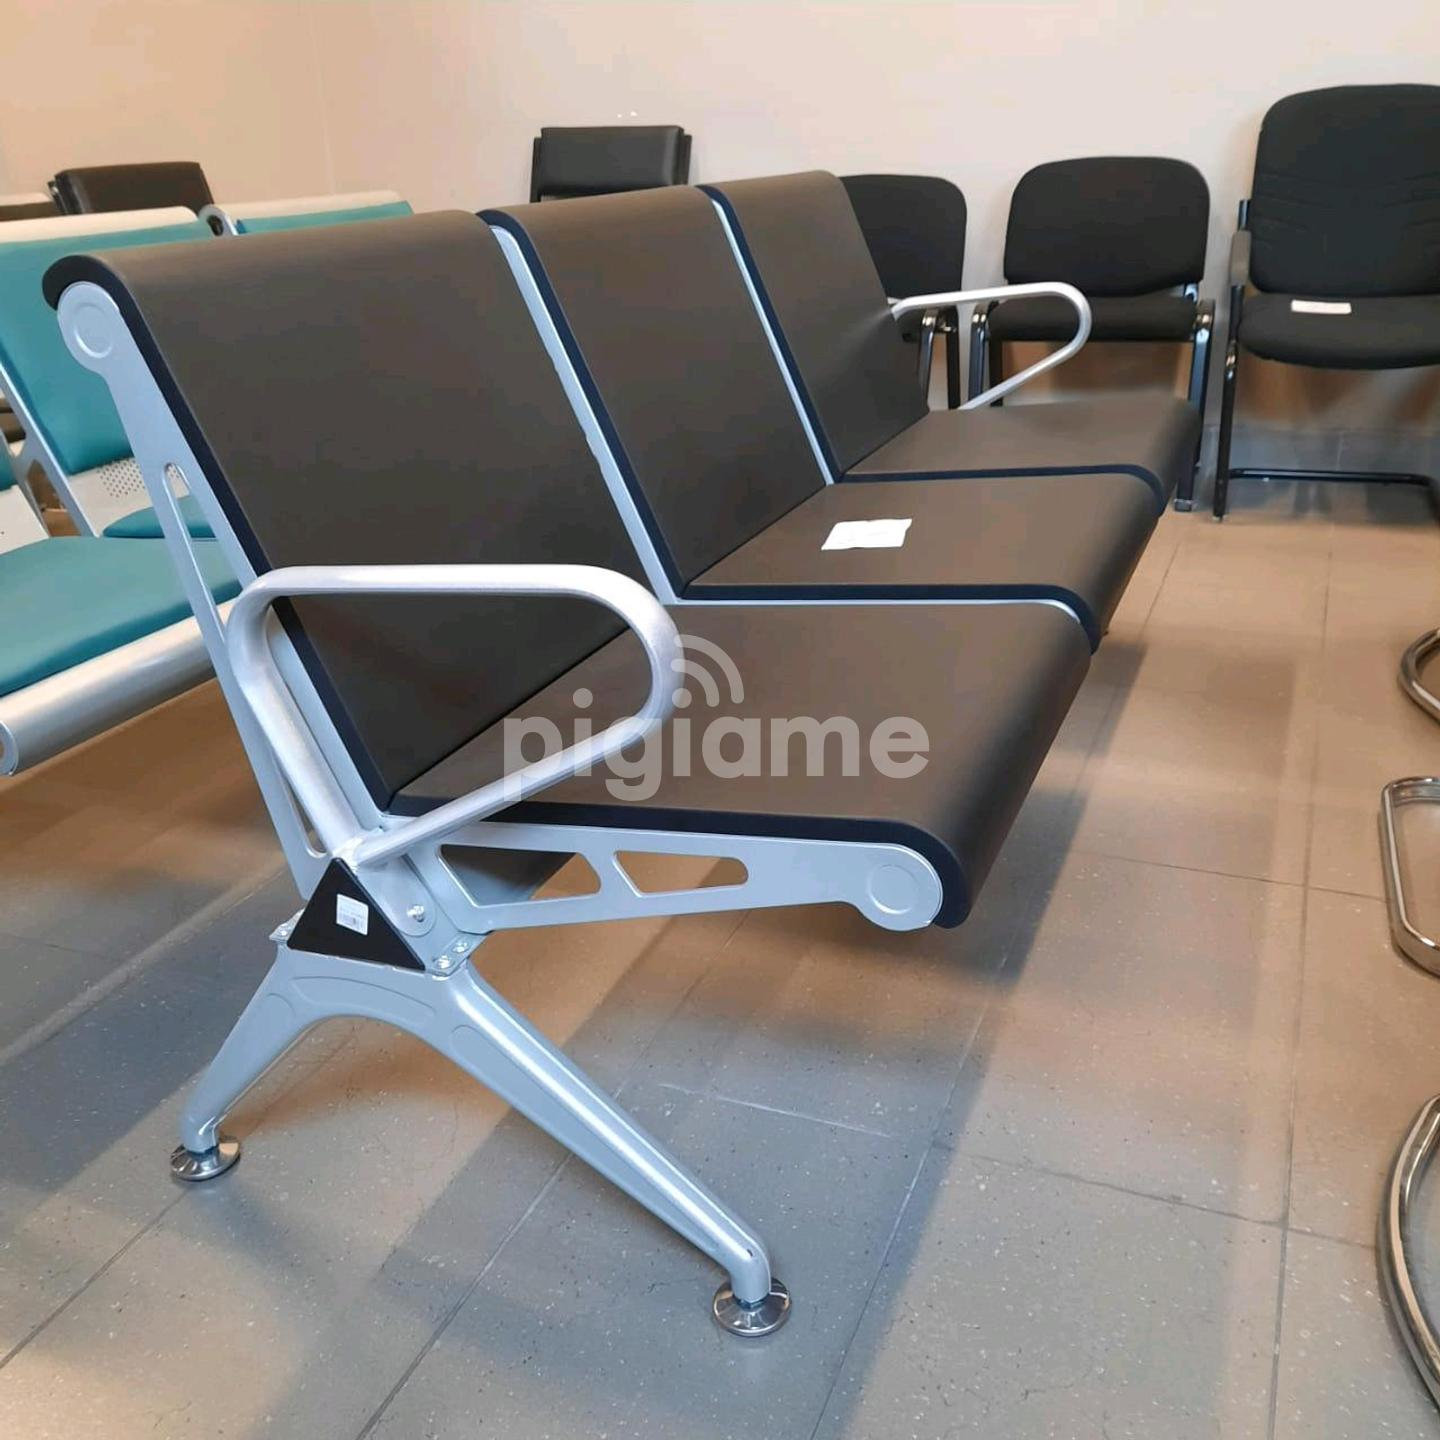 Picture of: Visitors Waiting Room Chairs In Nairobi Pigiame